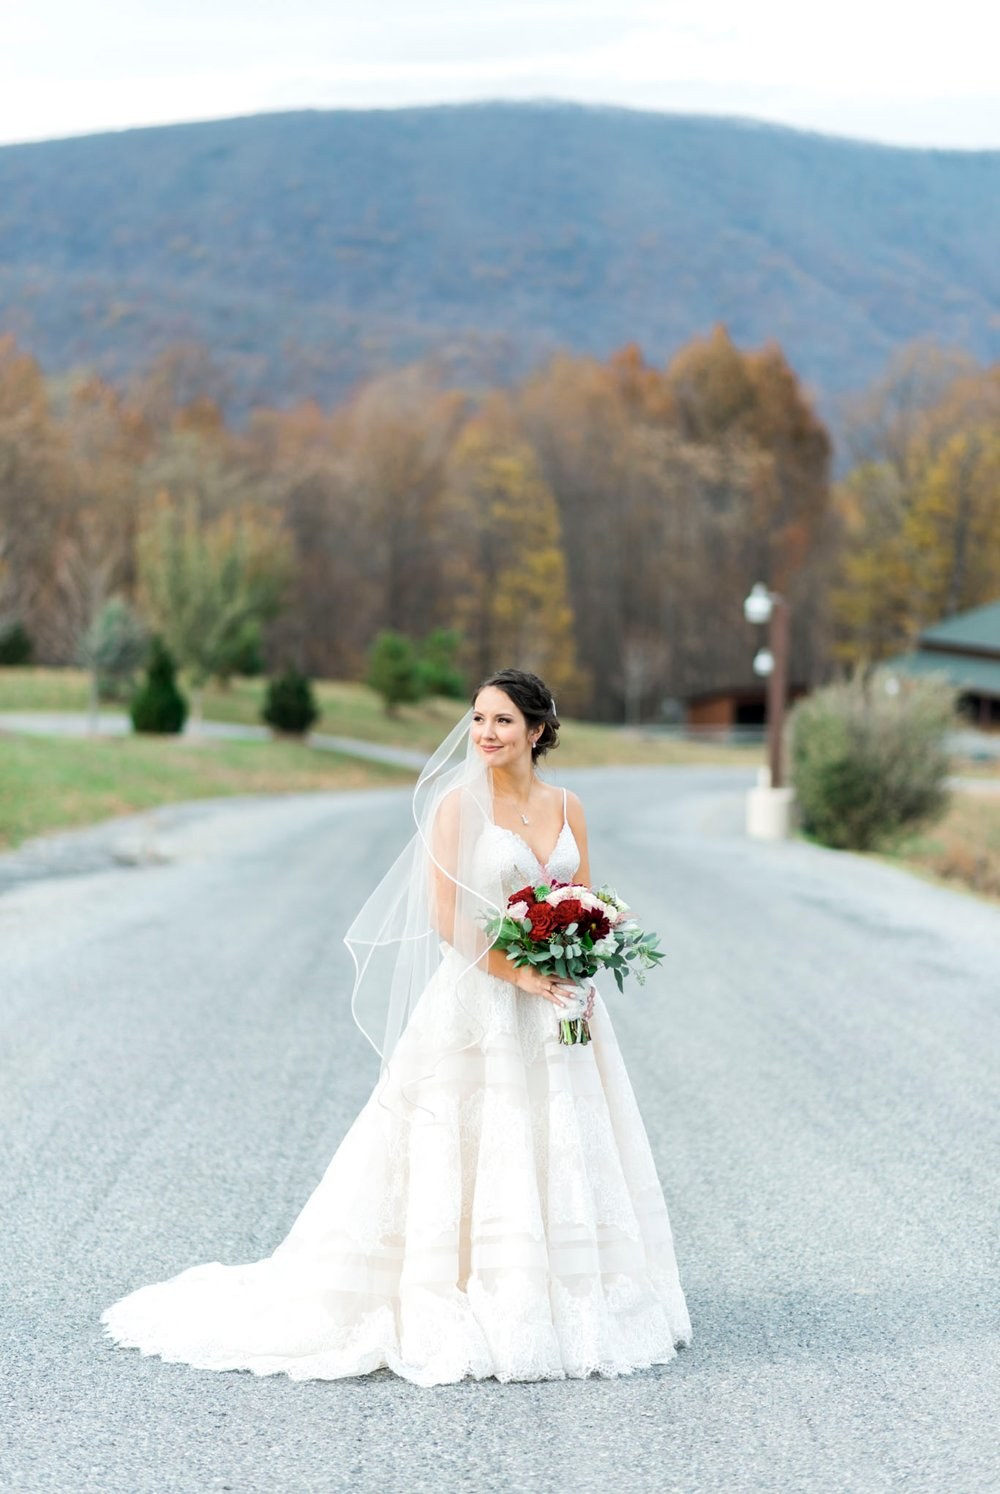 IrvineEstate_LexingtonVA_Wedding_FallWedding_VirginiaWeddingPhotographer 43.jpg